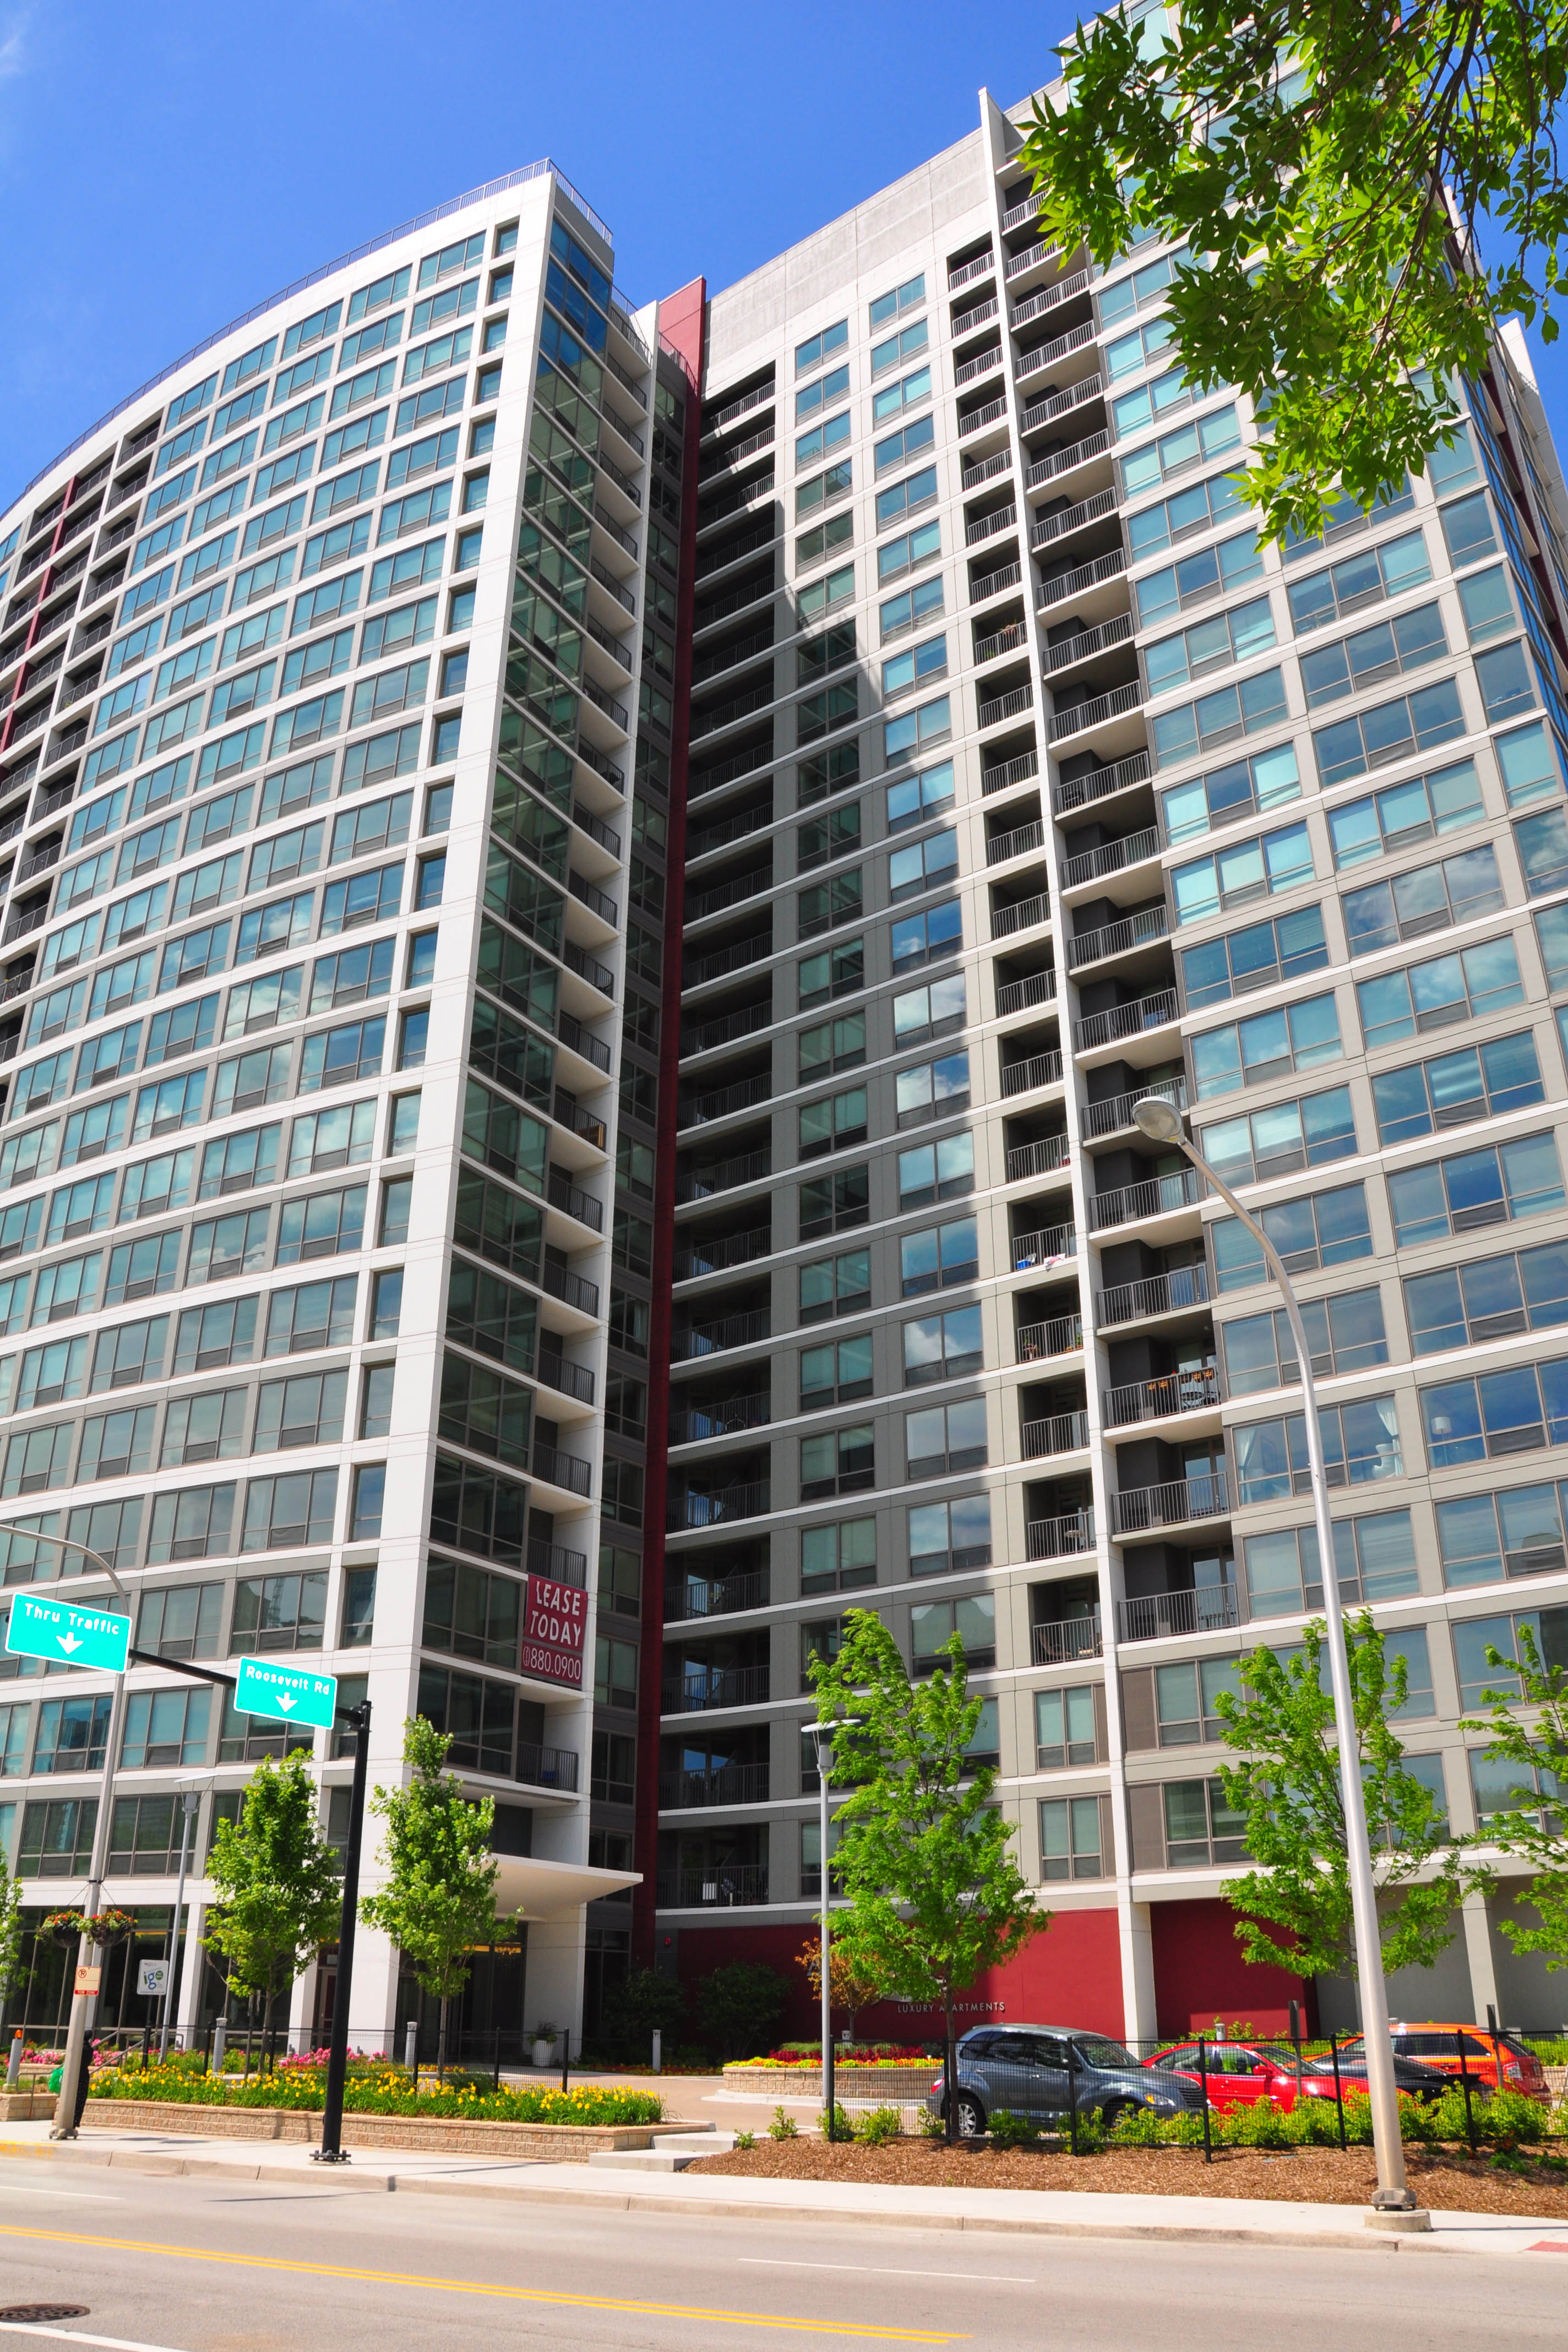 Model units, amenities and a home equity program from AMLI 900